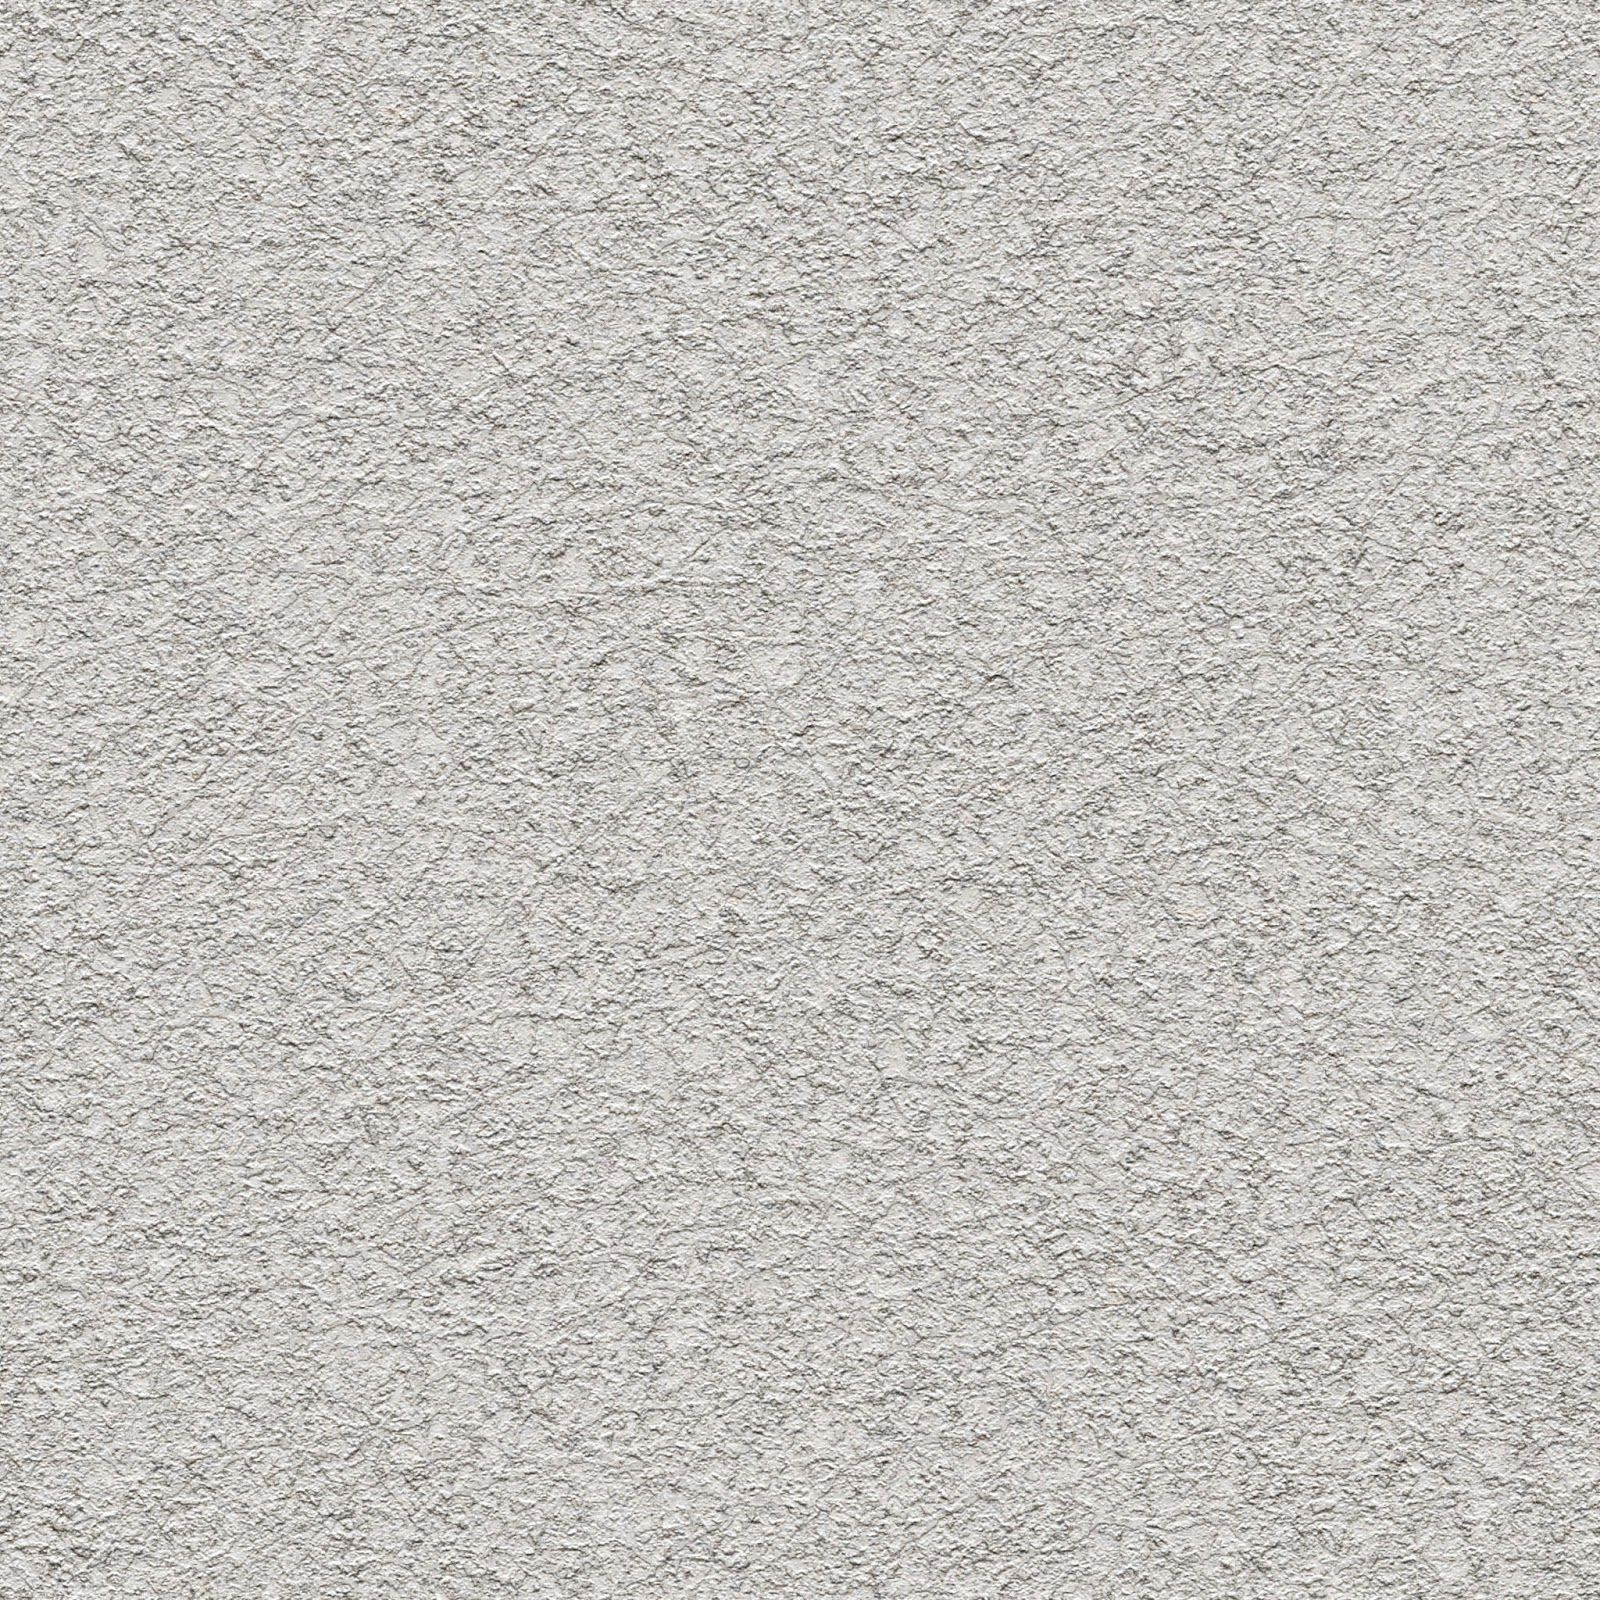 Wall paint texture seamless - Rough Stucco White Dirty Paint Streaky Plaster Fine Detail Wall April 2014 Texture Seamless Tileable